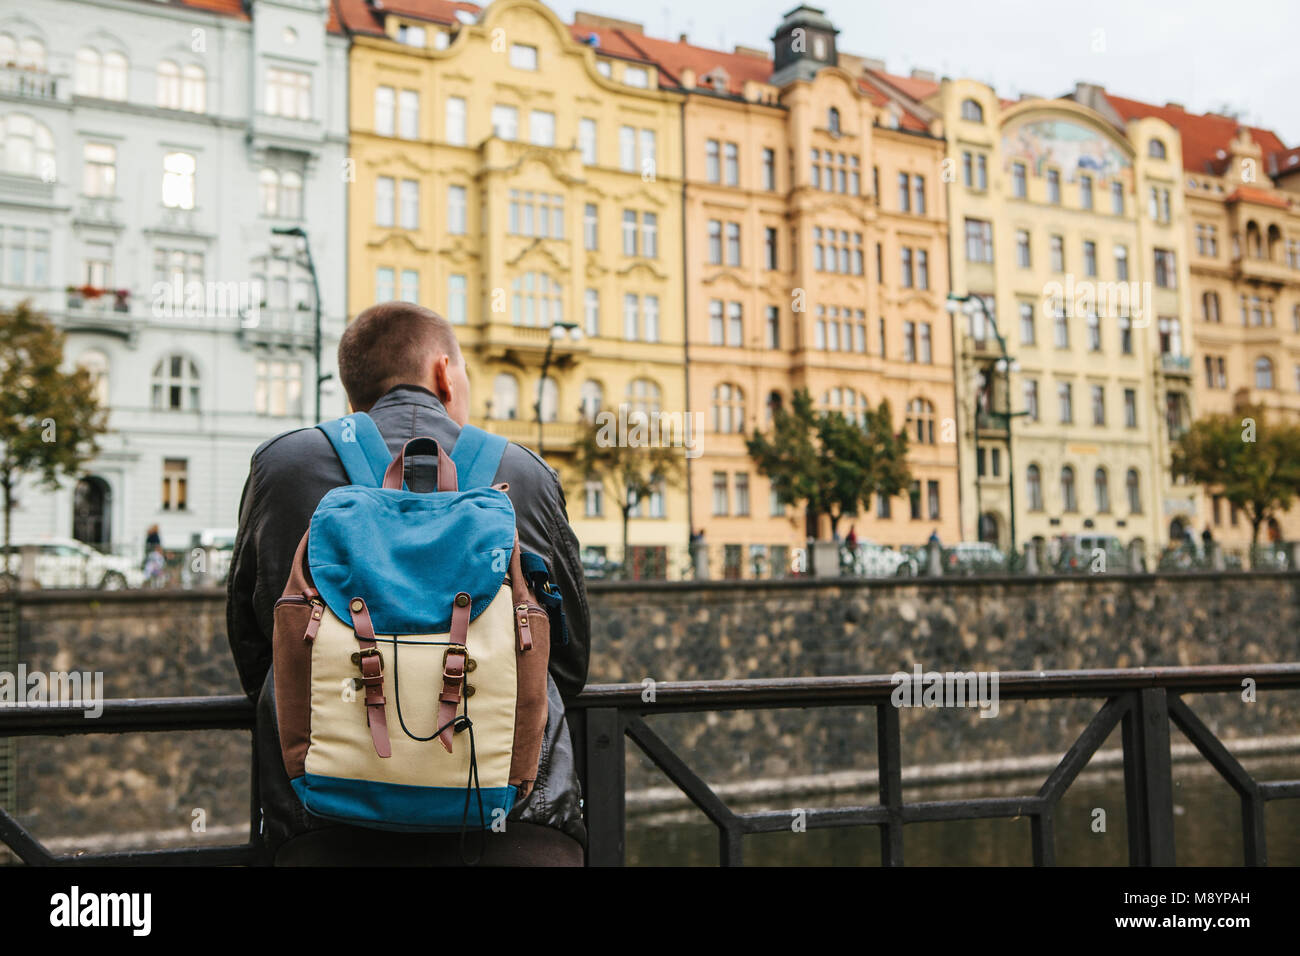 A tourist with a backpack in front of a beautiful old architecture in Prague in the Czech Republic. Travel, tourism - Stock Image